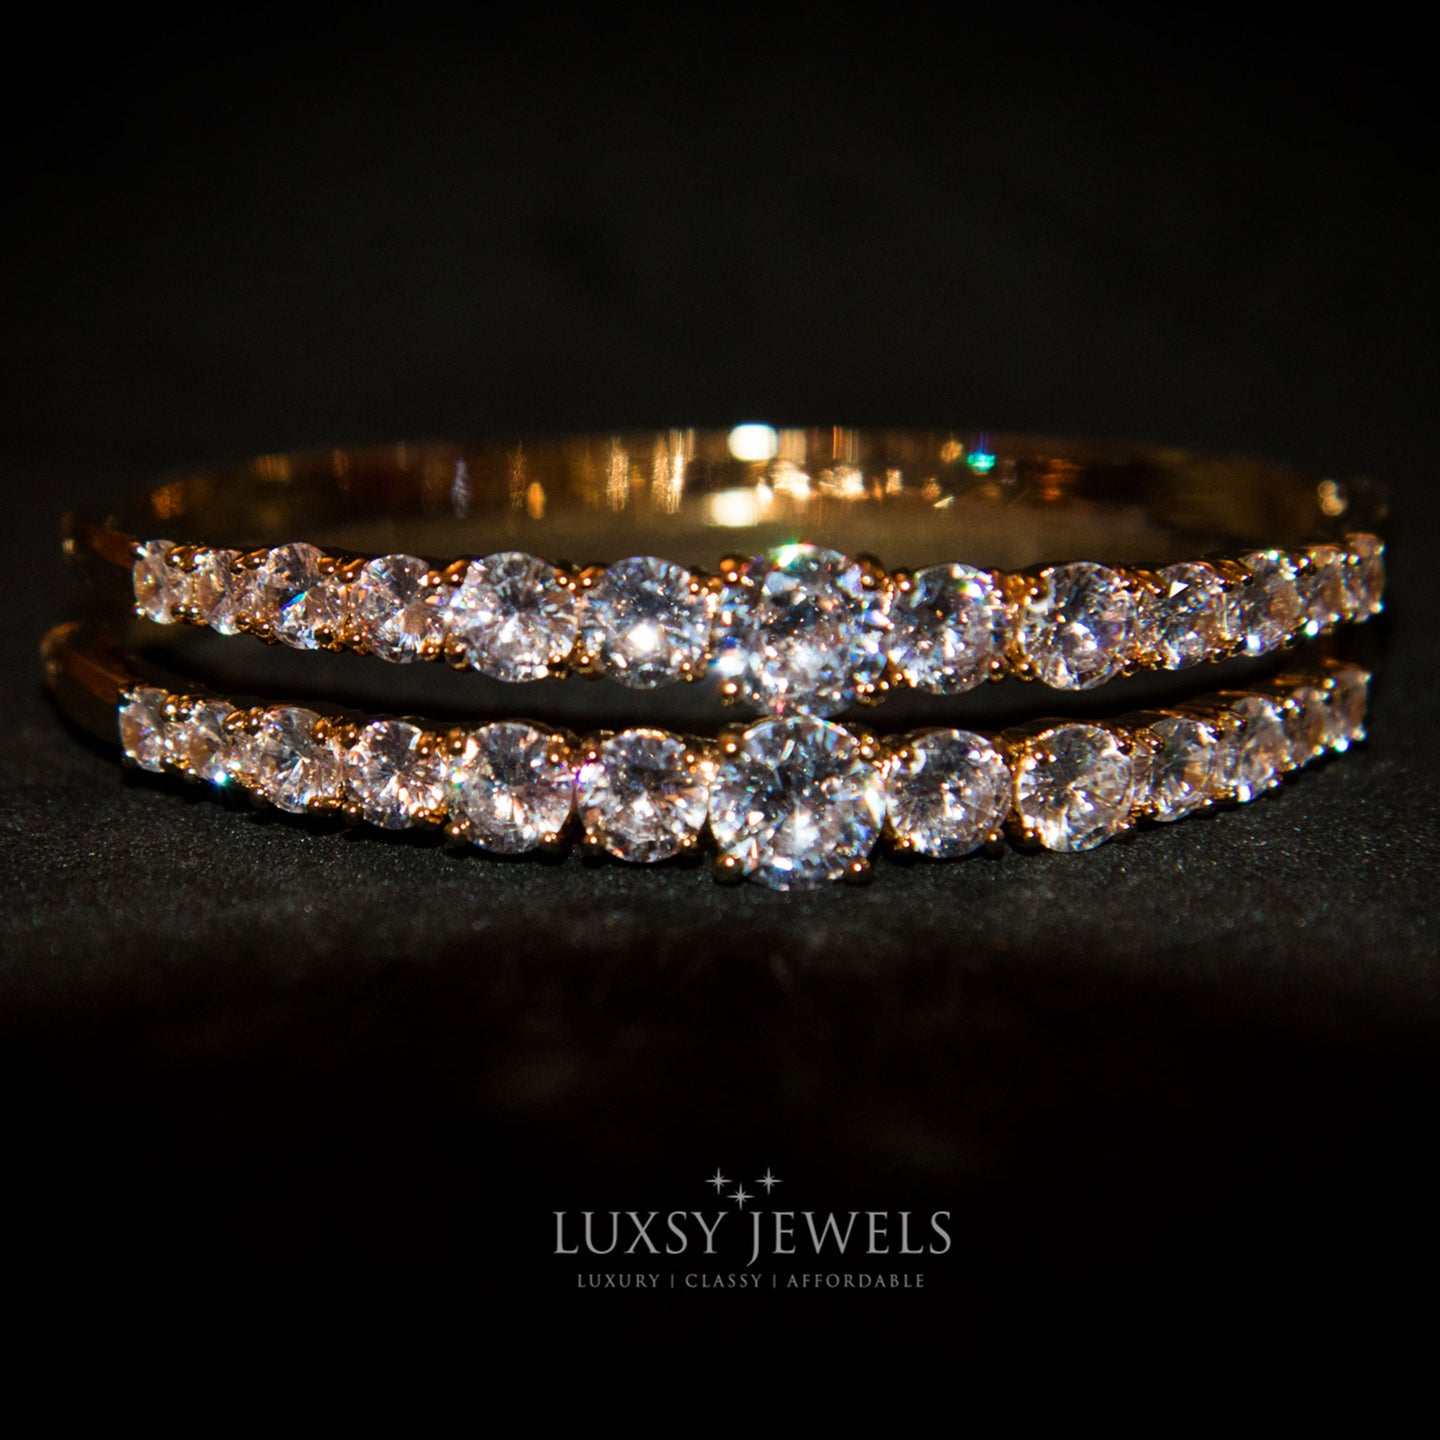 2 Luxsy Layla Bangles - Luxsy Jewels